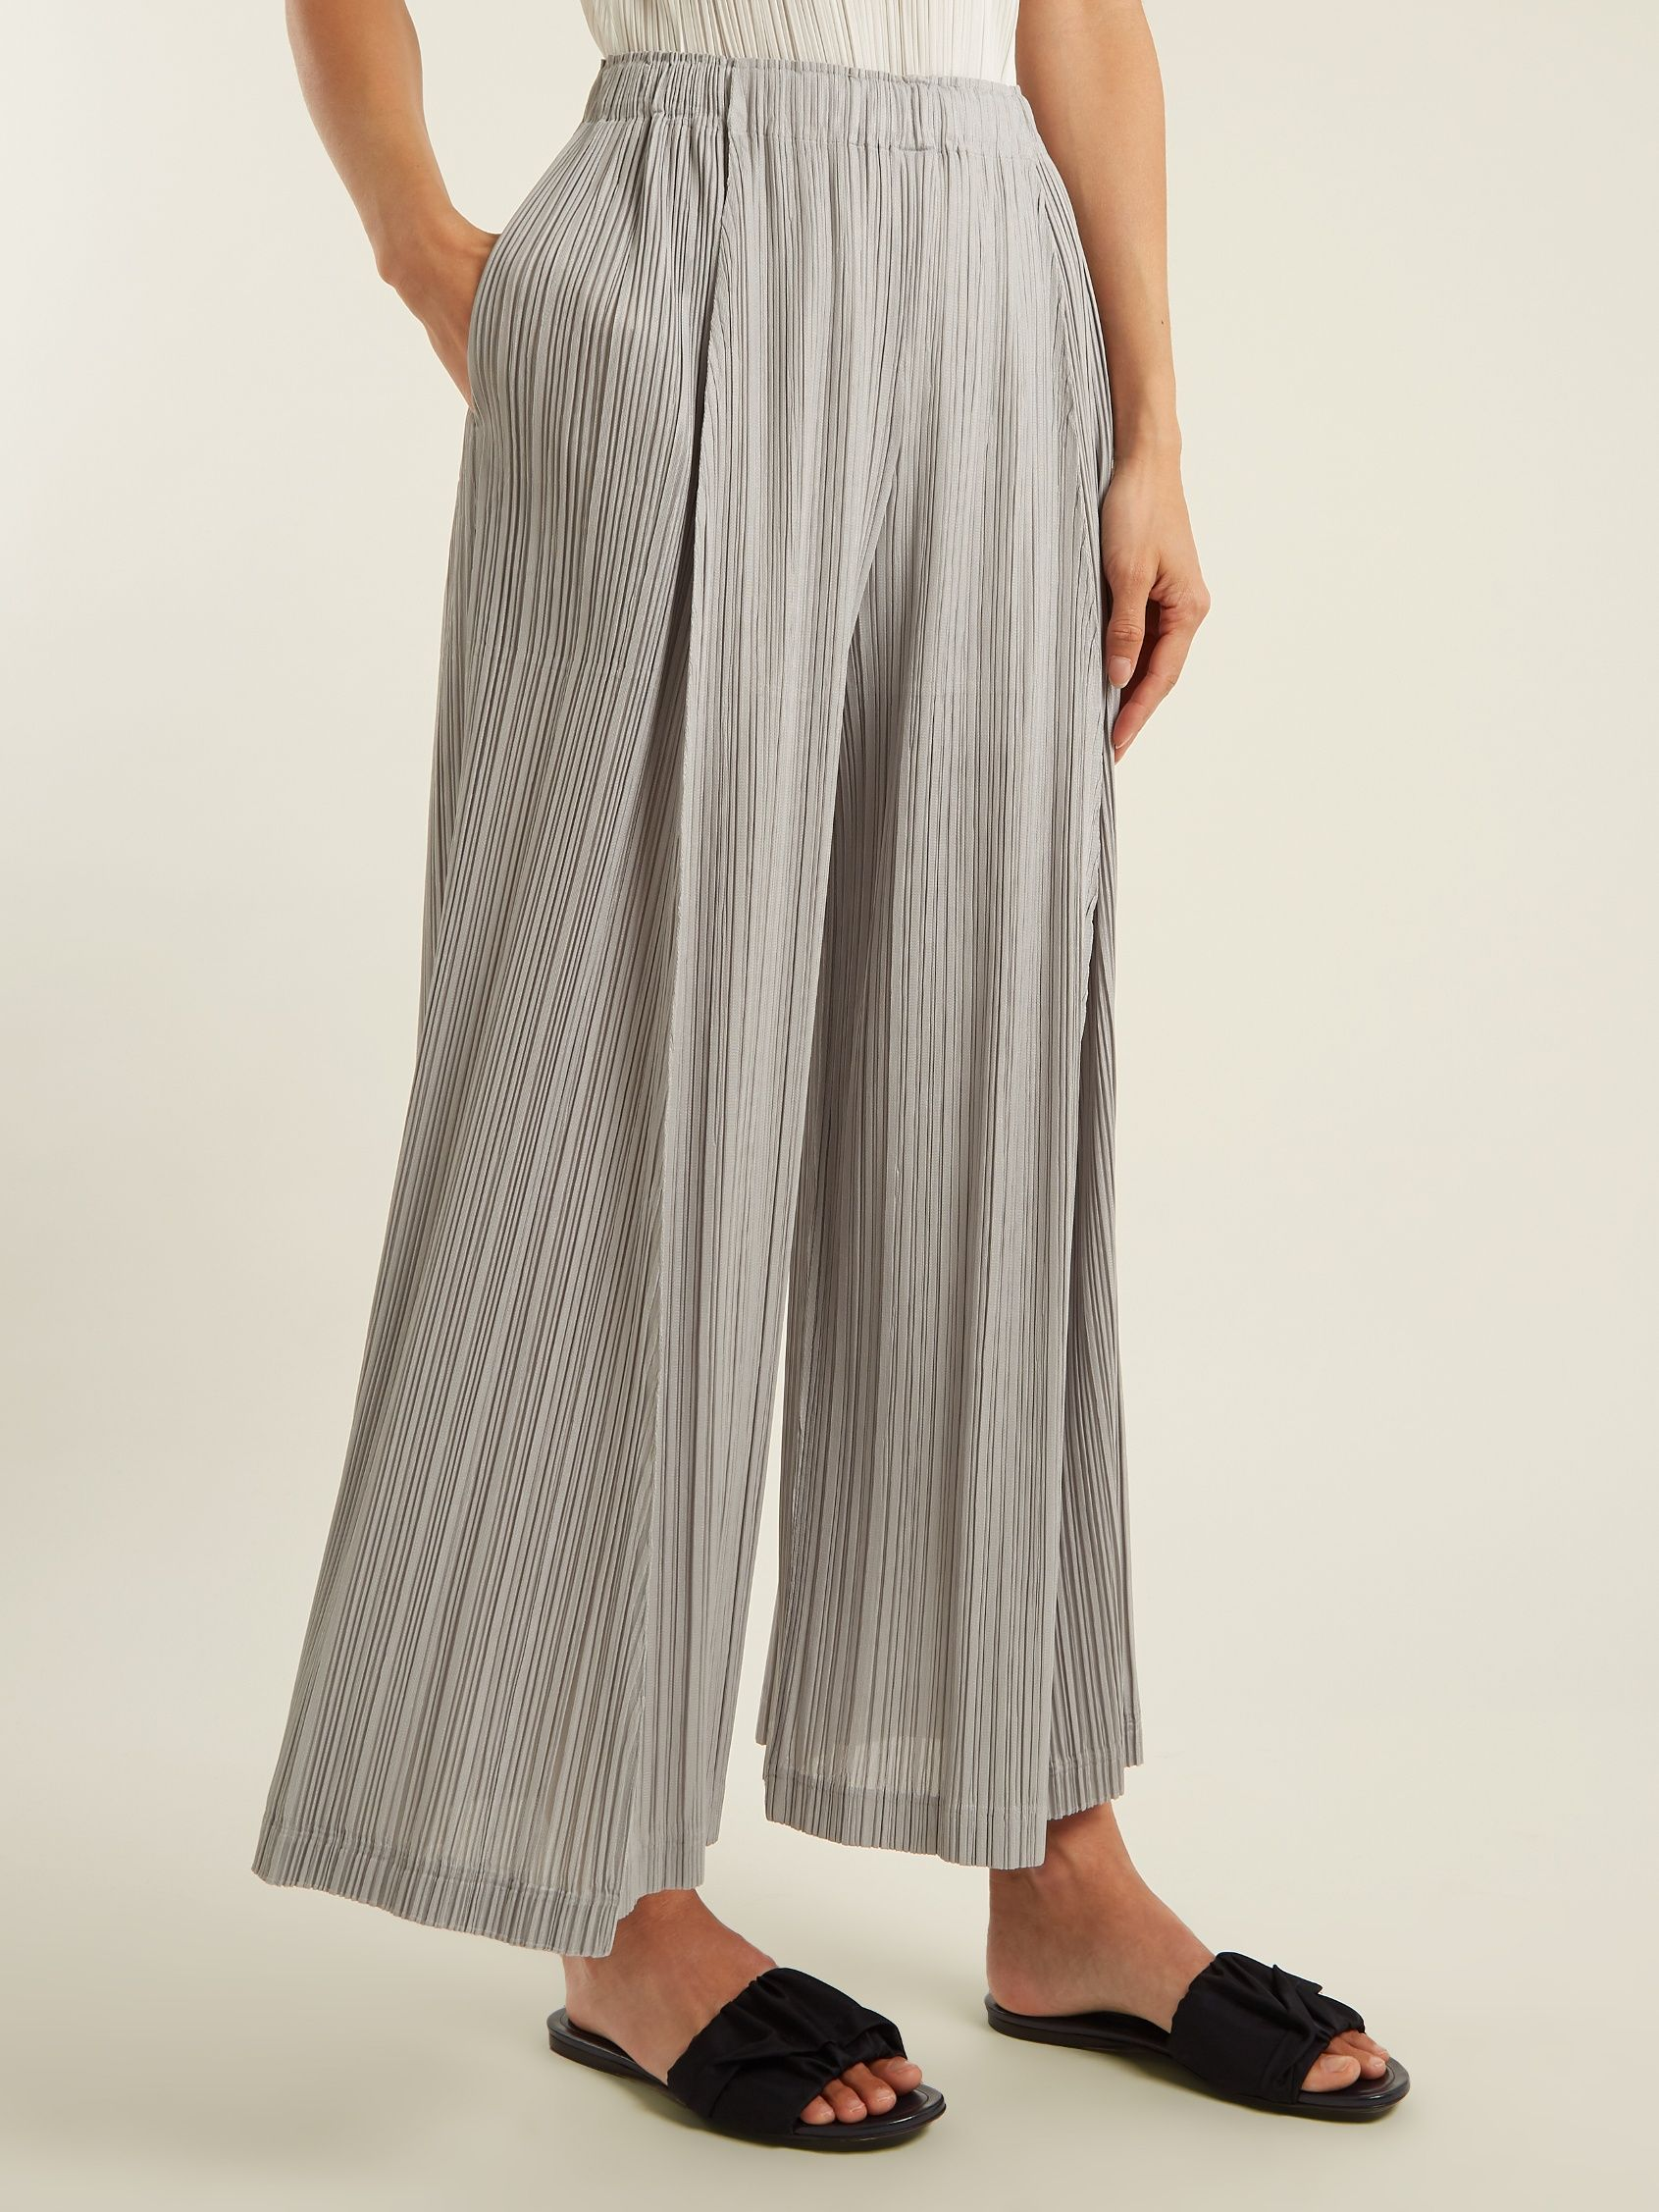 Click here to buy Pleats Please Issey Miyake Pleated wide-leg trousers at  MATCHESFASHION. c3df29a305ef9